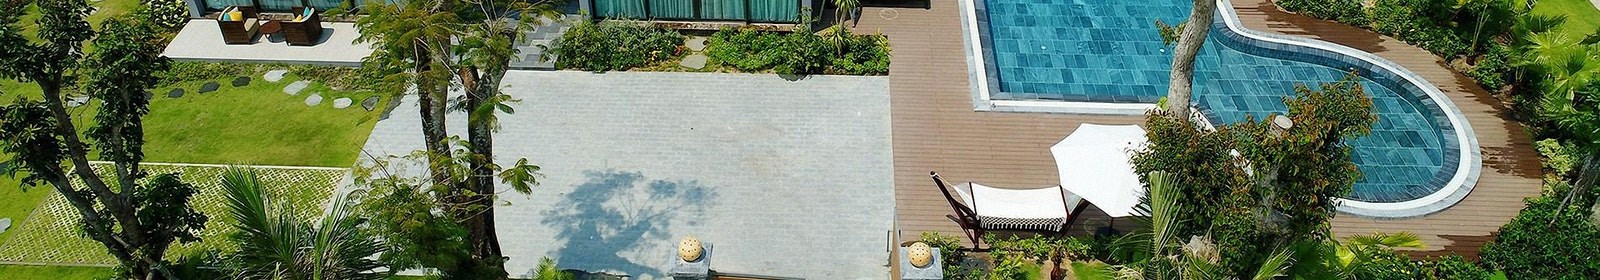 Maximise your outdoor space to enhance your enjoyment of your property